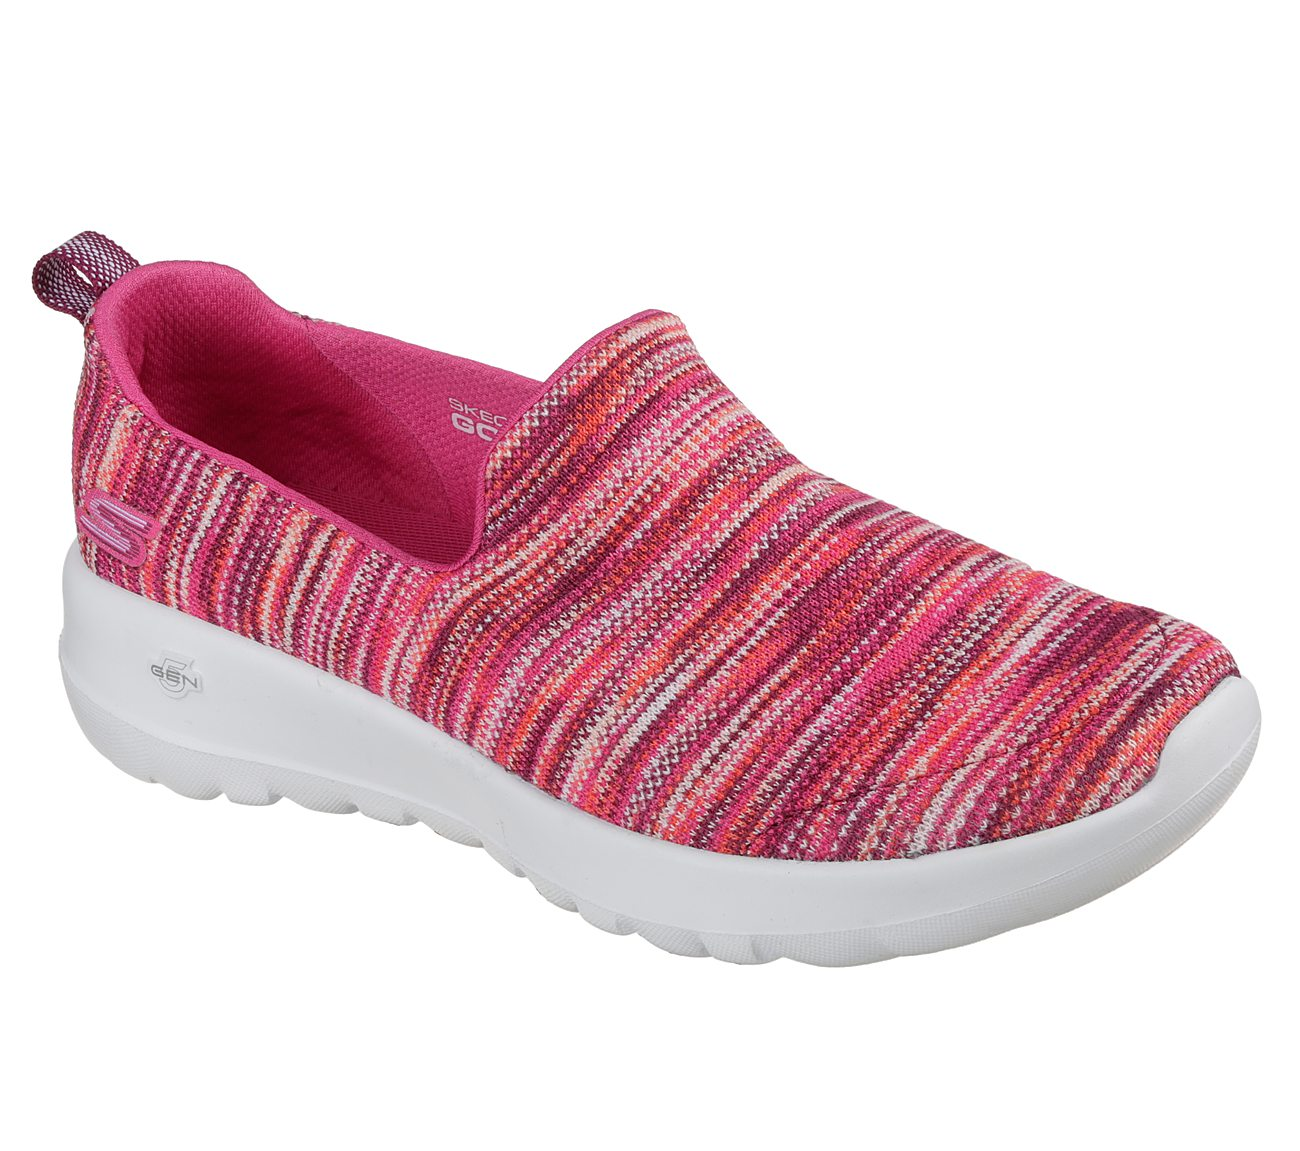 SKECHERS GOWALK JOY TERRIFIC